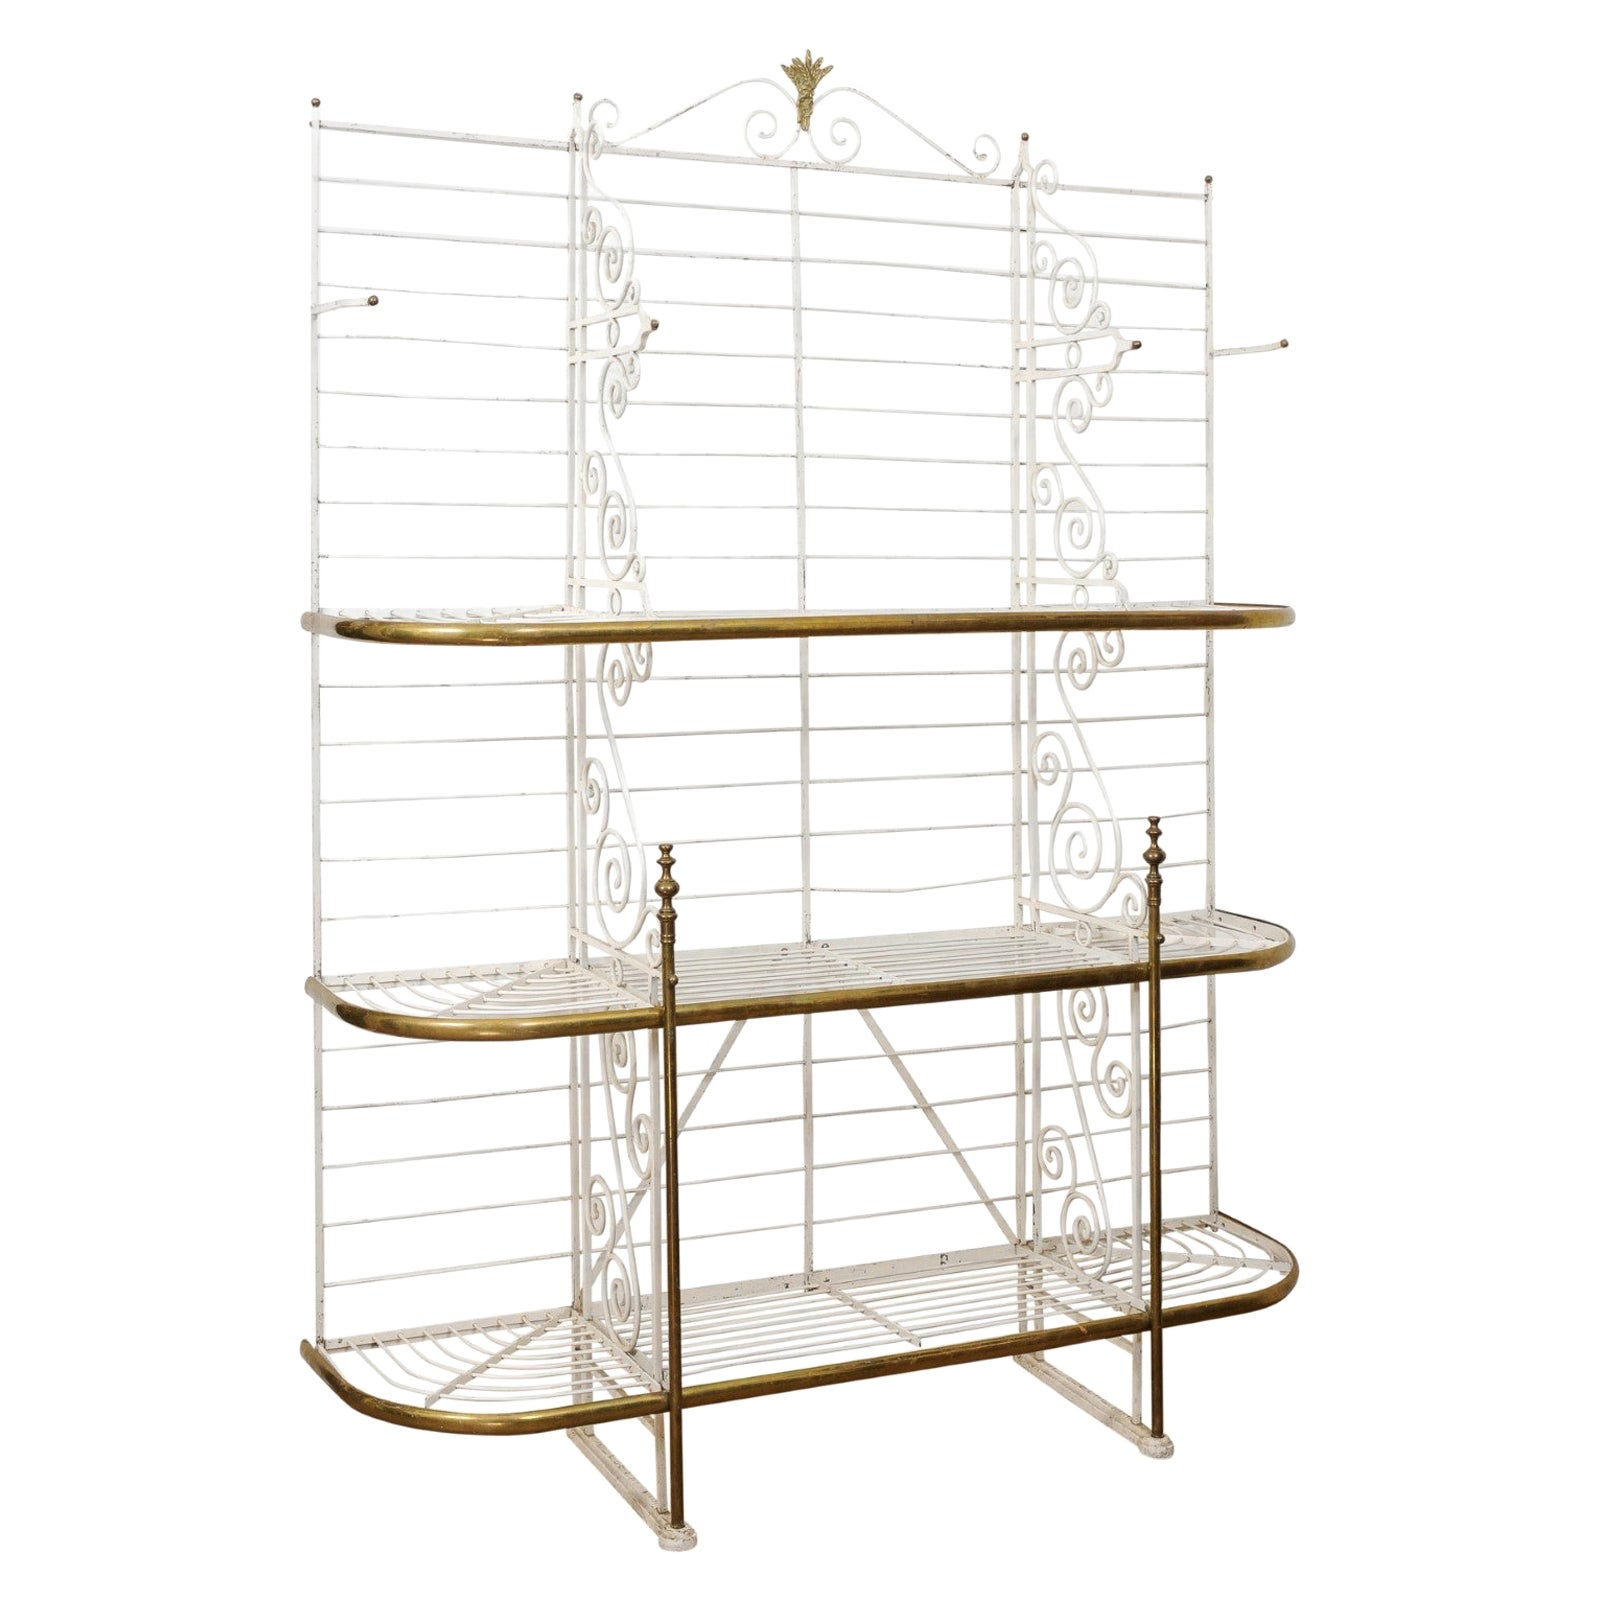 French Belle Époque 1890s White Painted Metal Baker's Rack with Brass Accents